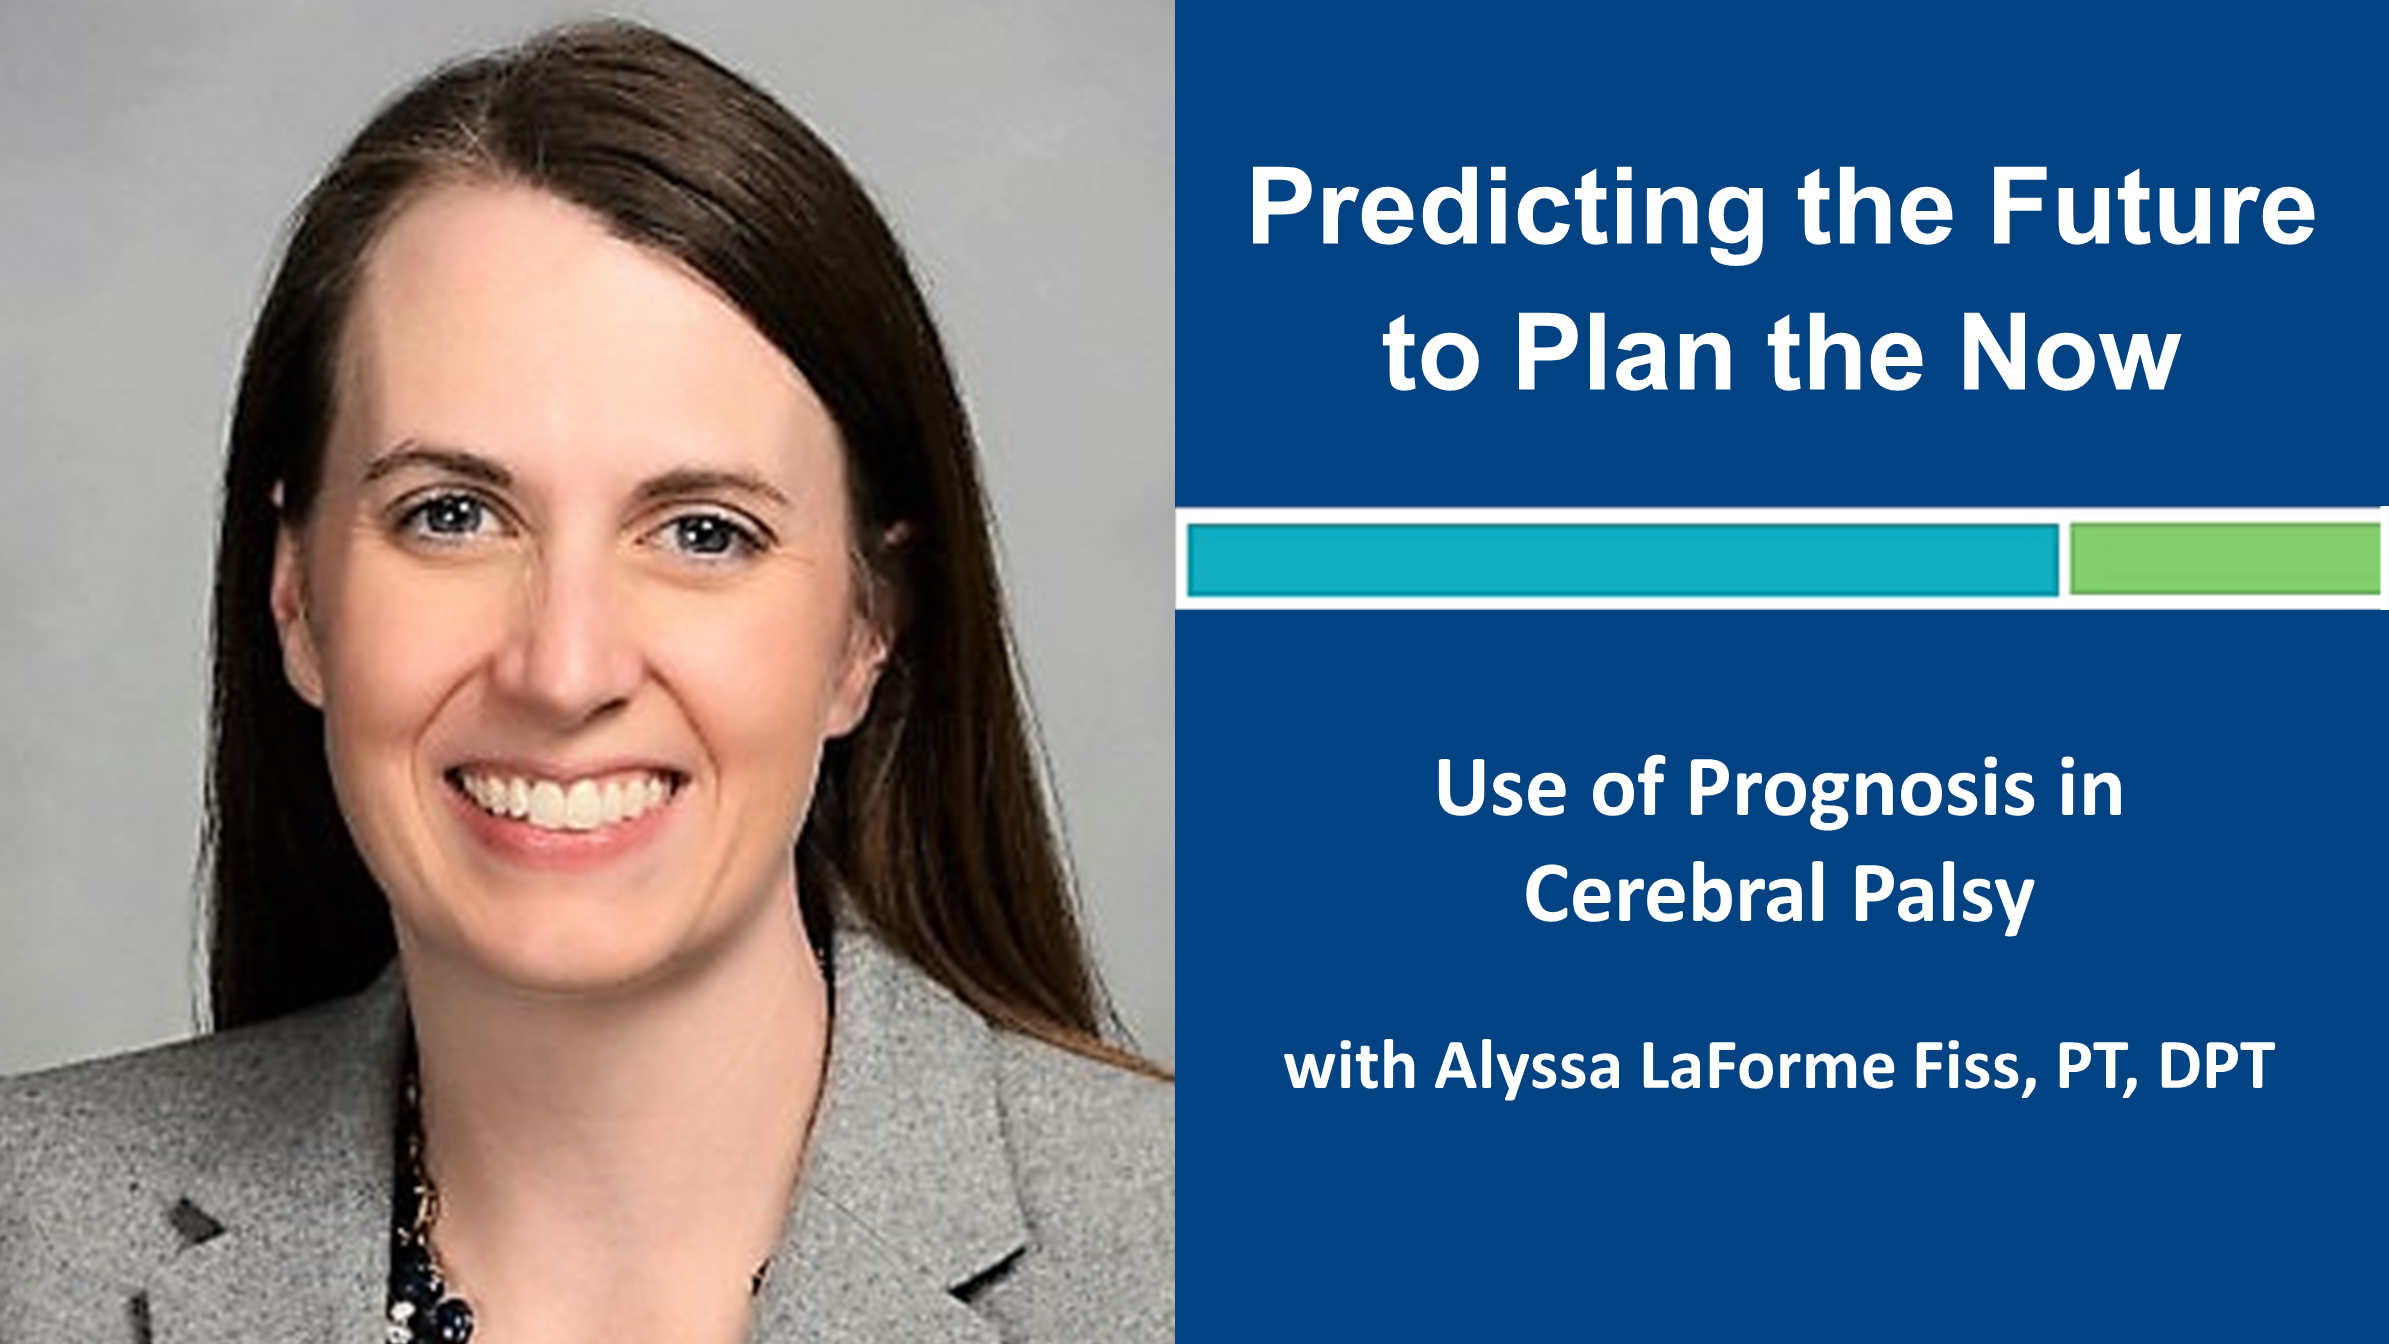 Webinar 2: Predicting the Future to Plan the Now - CP with Alyssa LaForme Fiss, PT, PhD